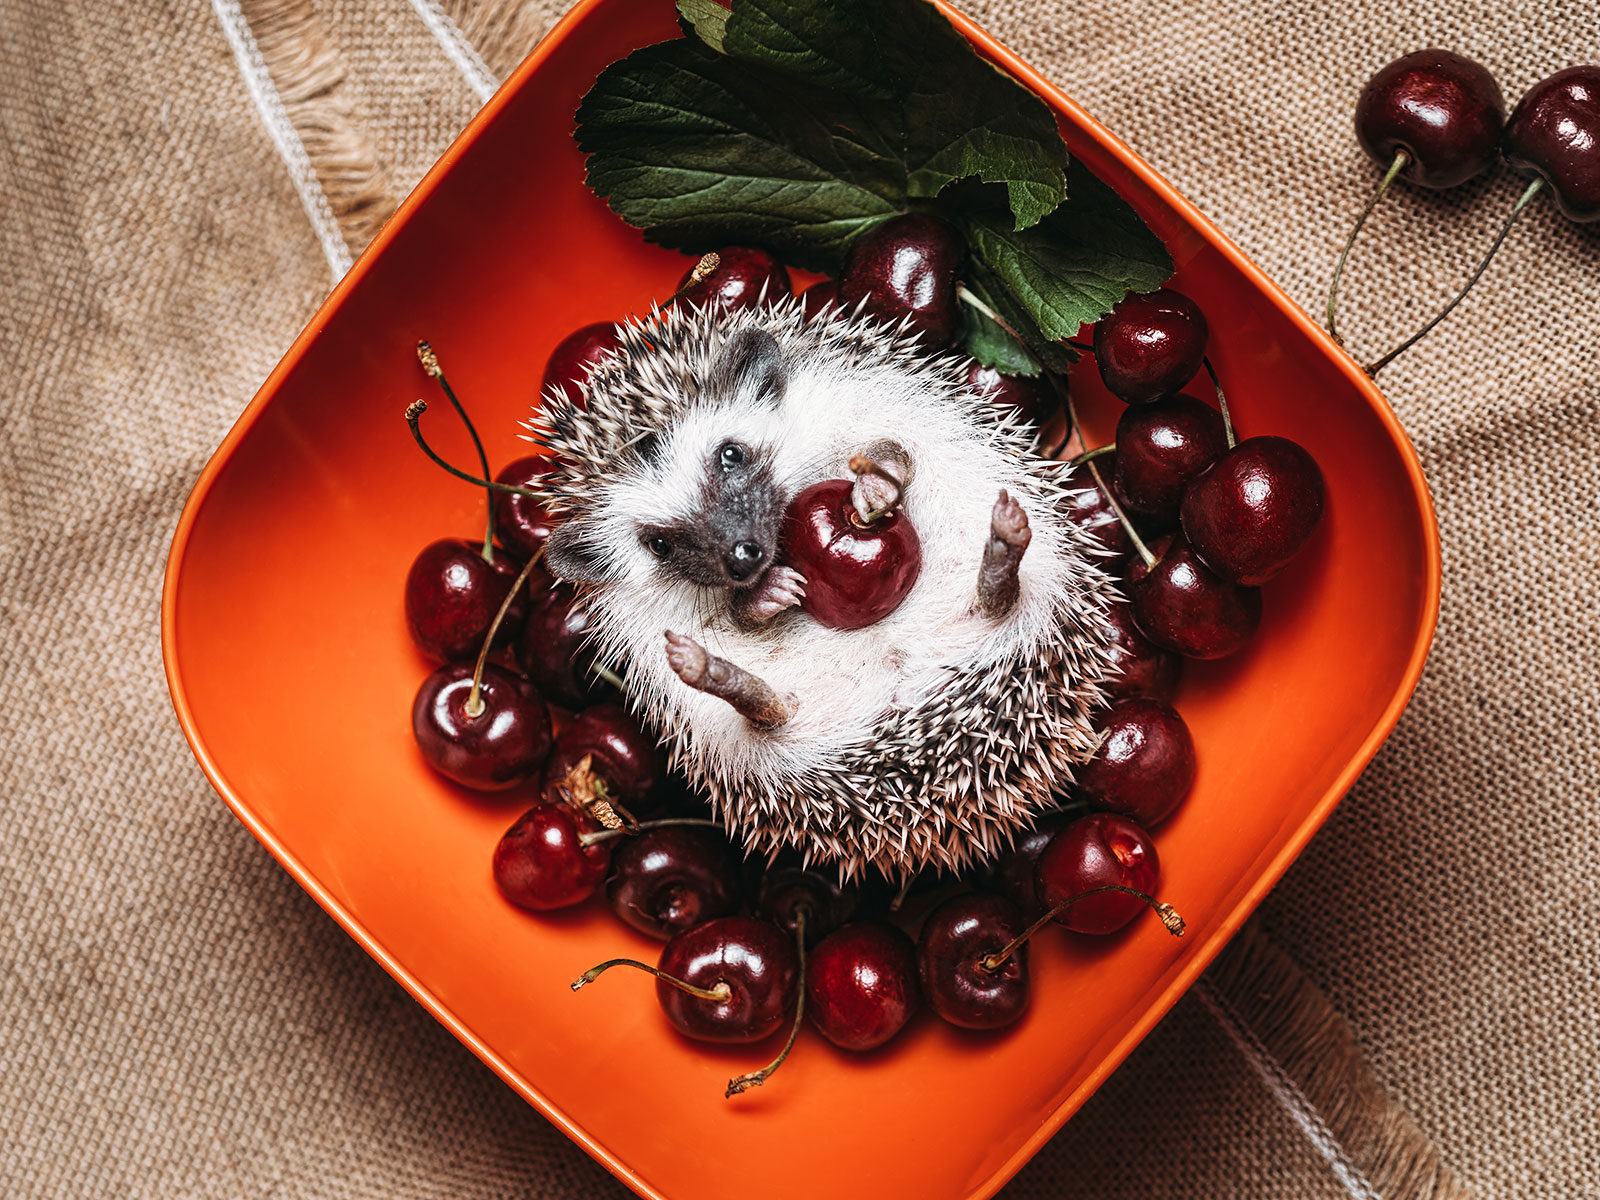 hedgehogs eating human food